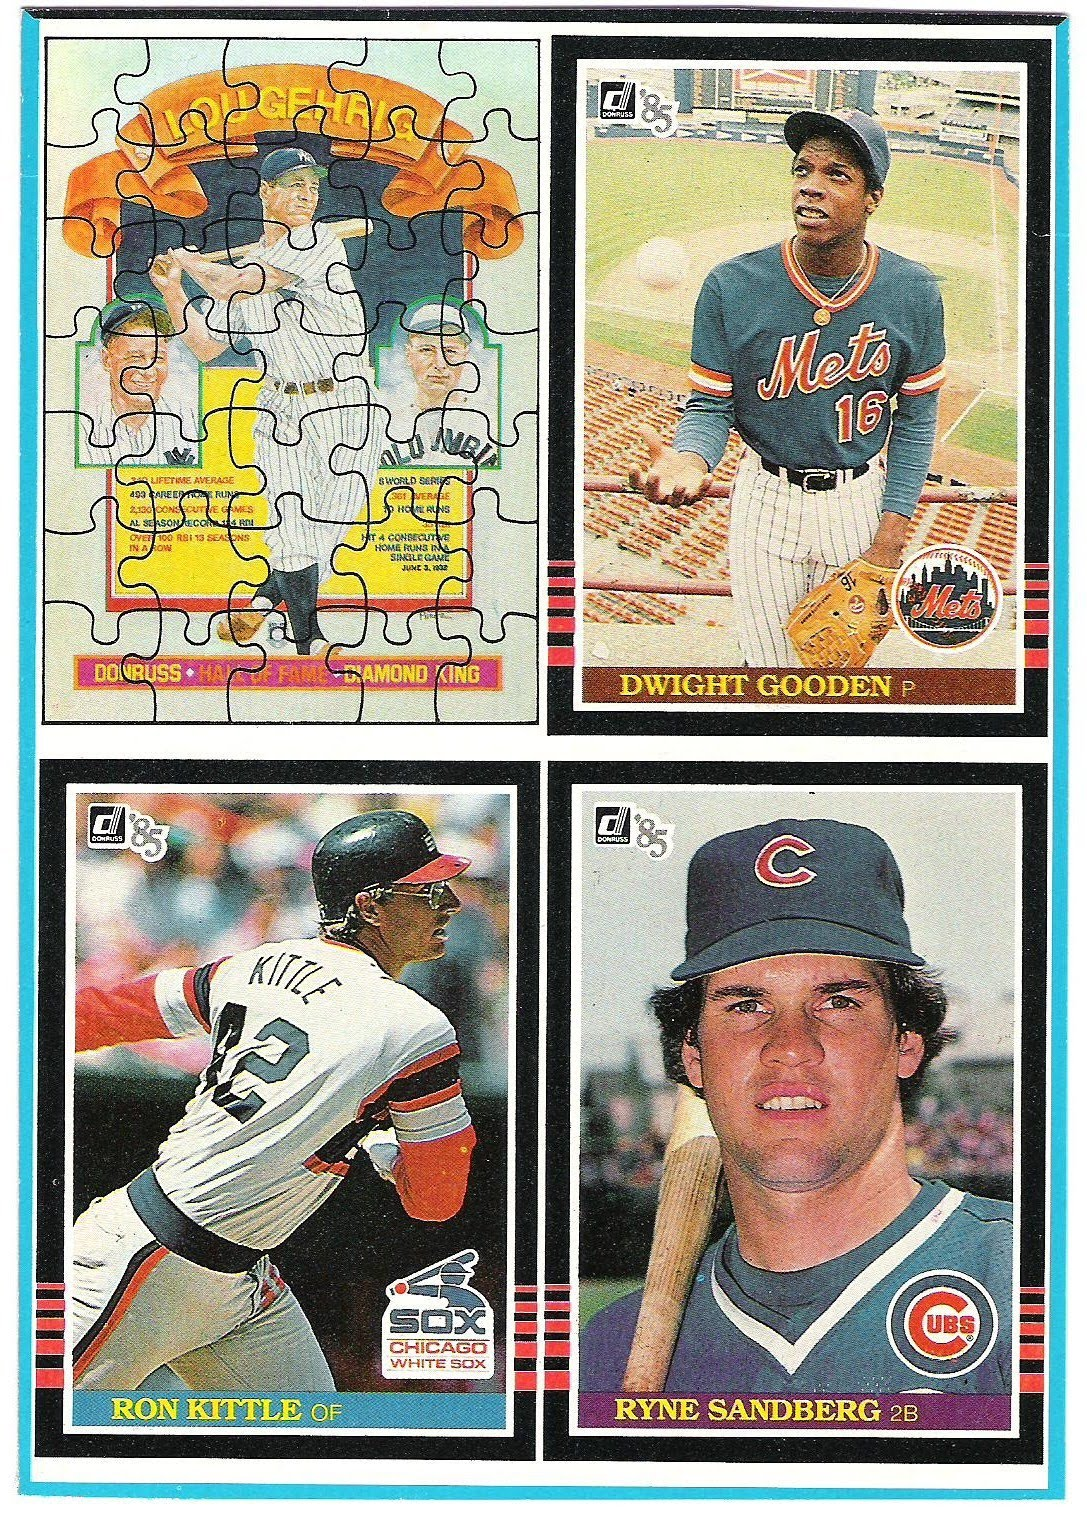 1985 Donruss Box Bottom Panel